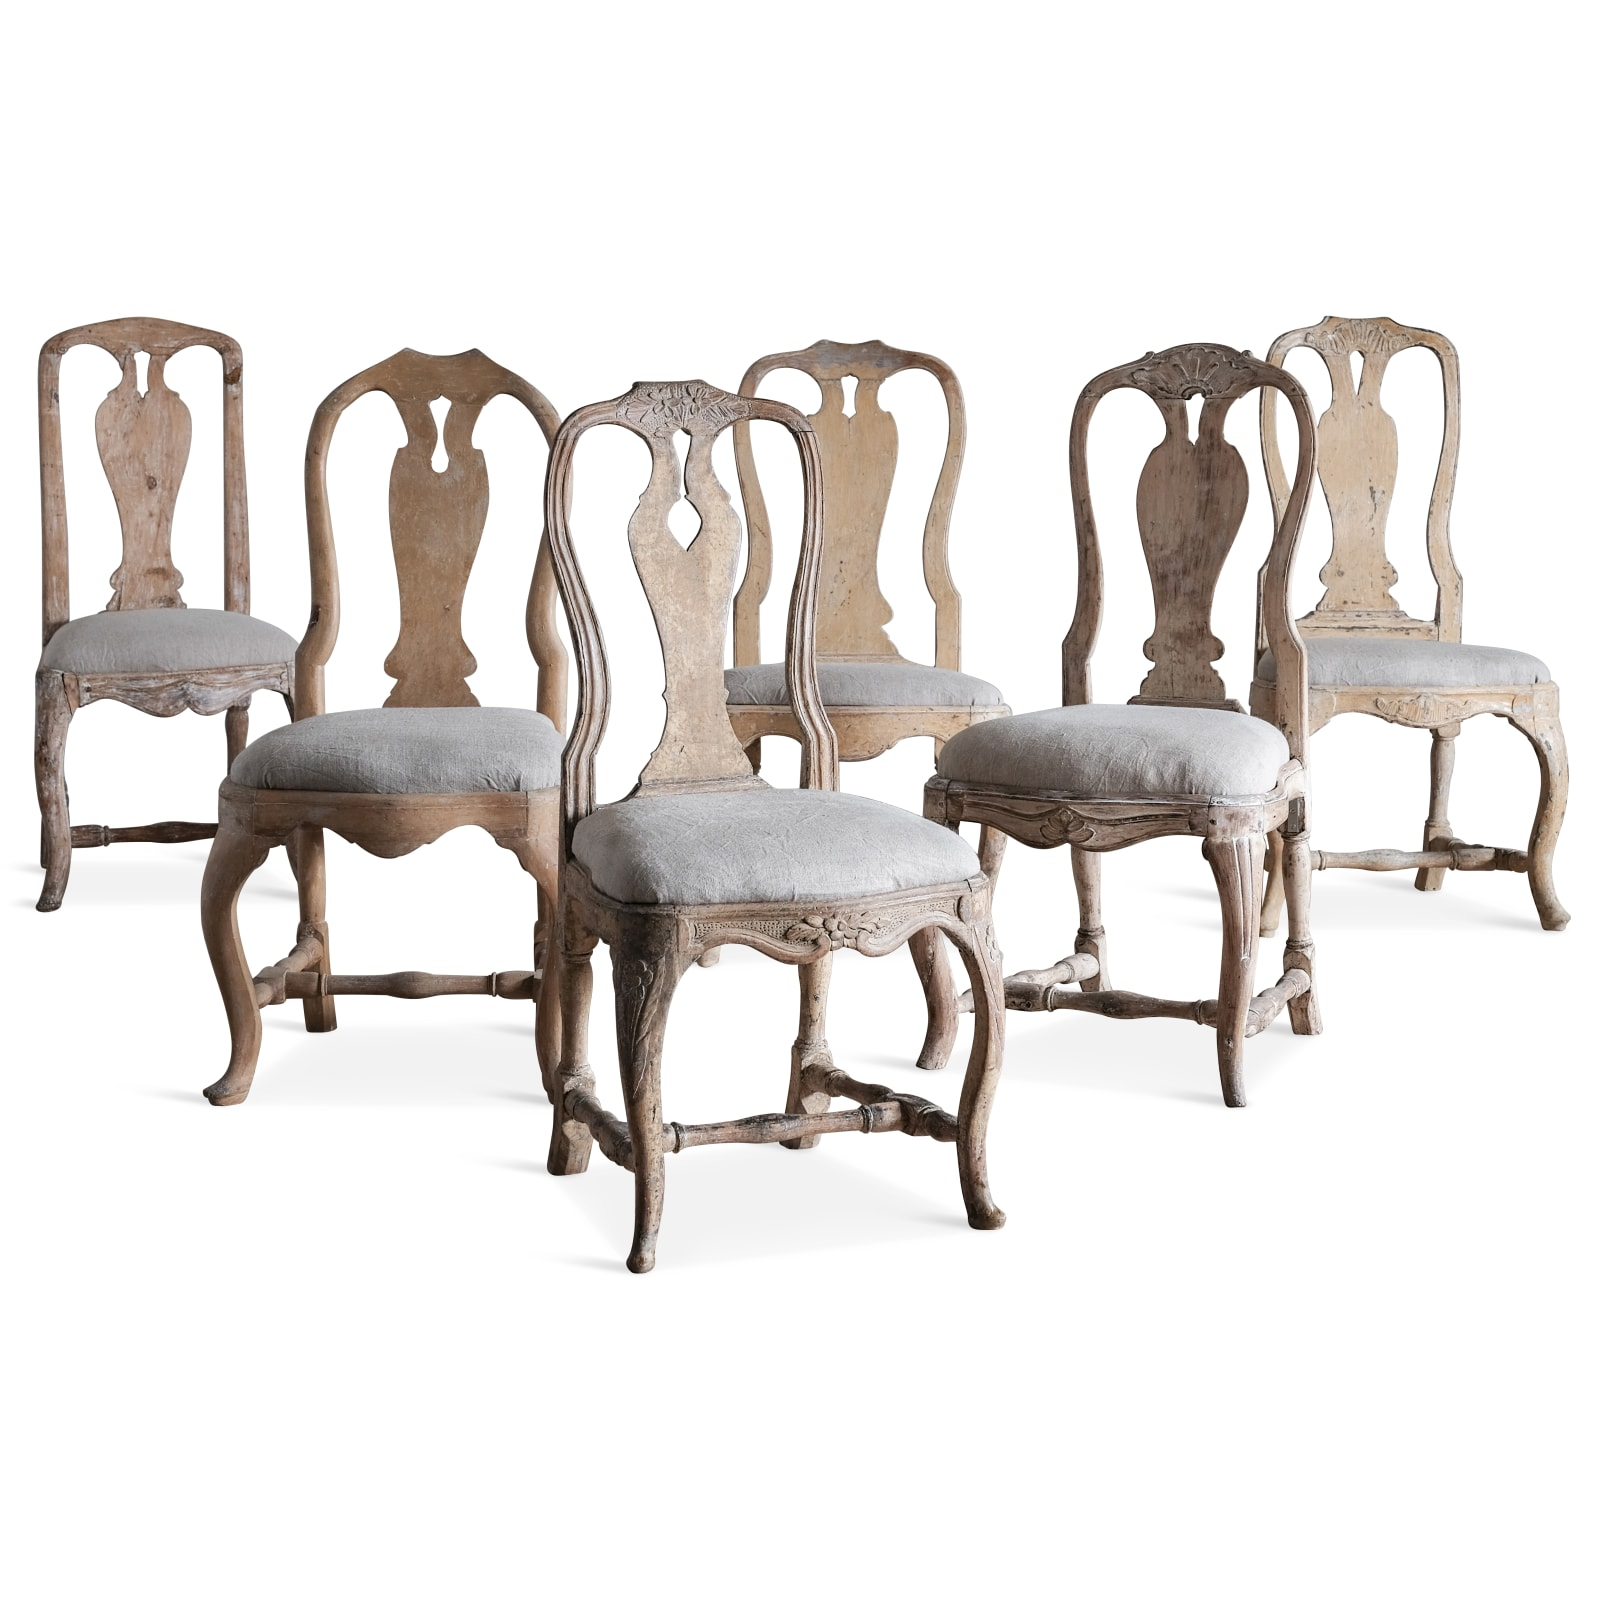 Rococo Chairs D Larsson